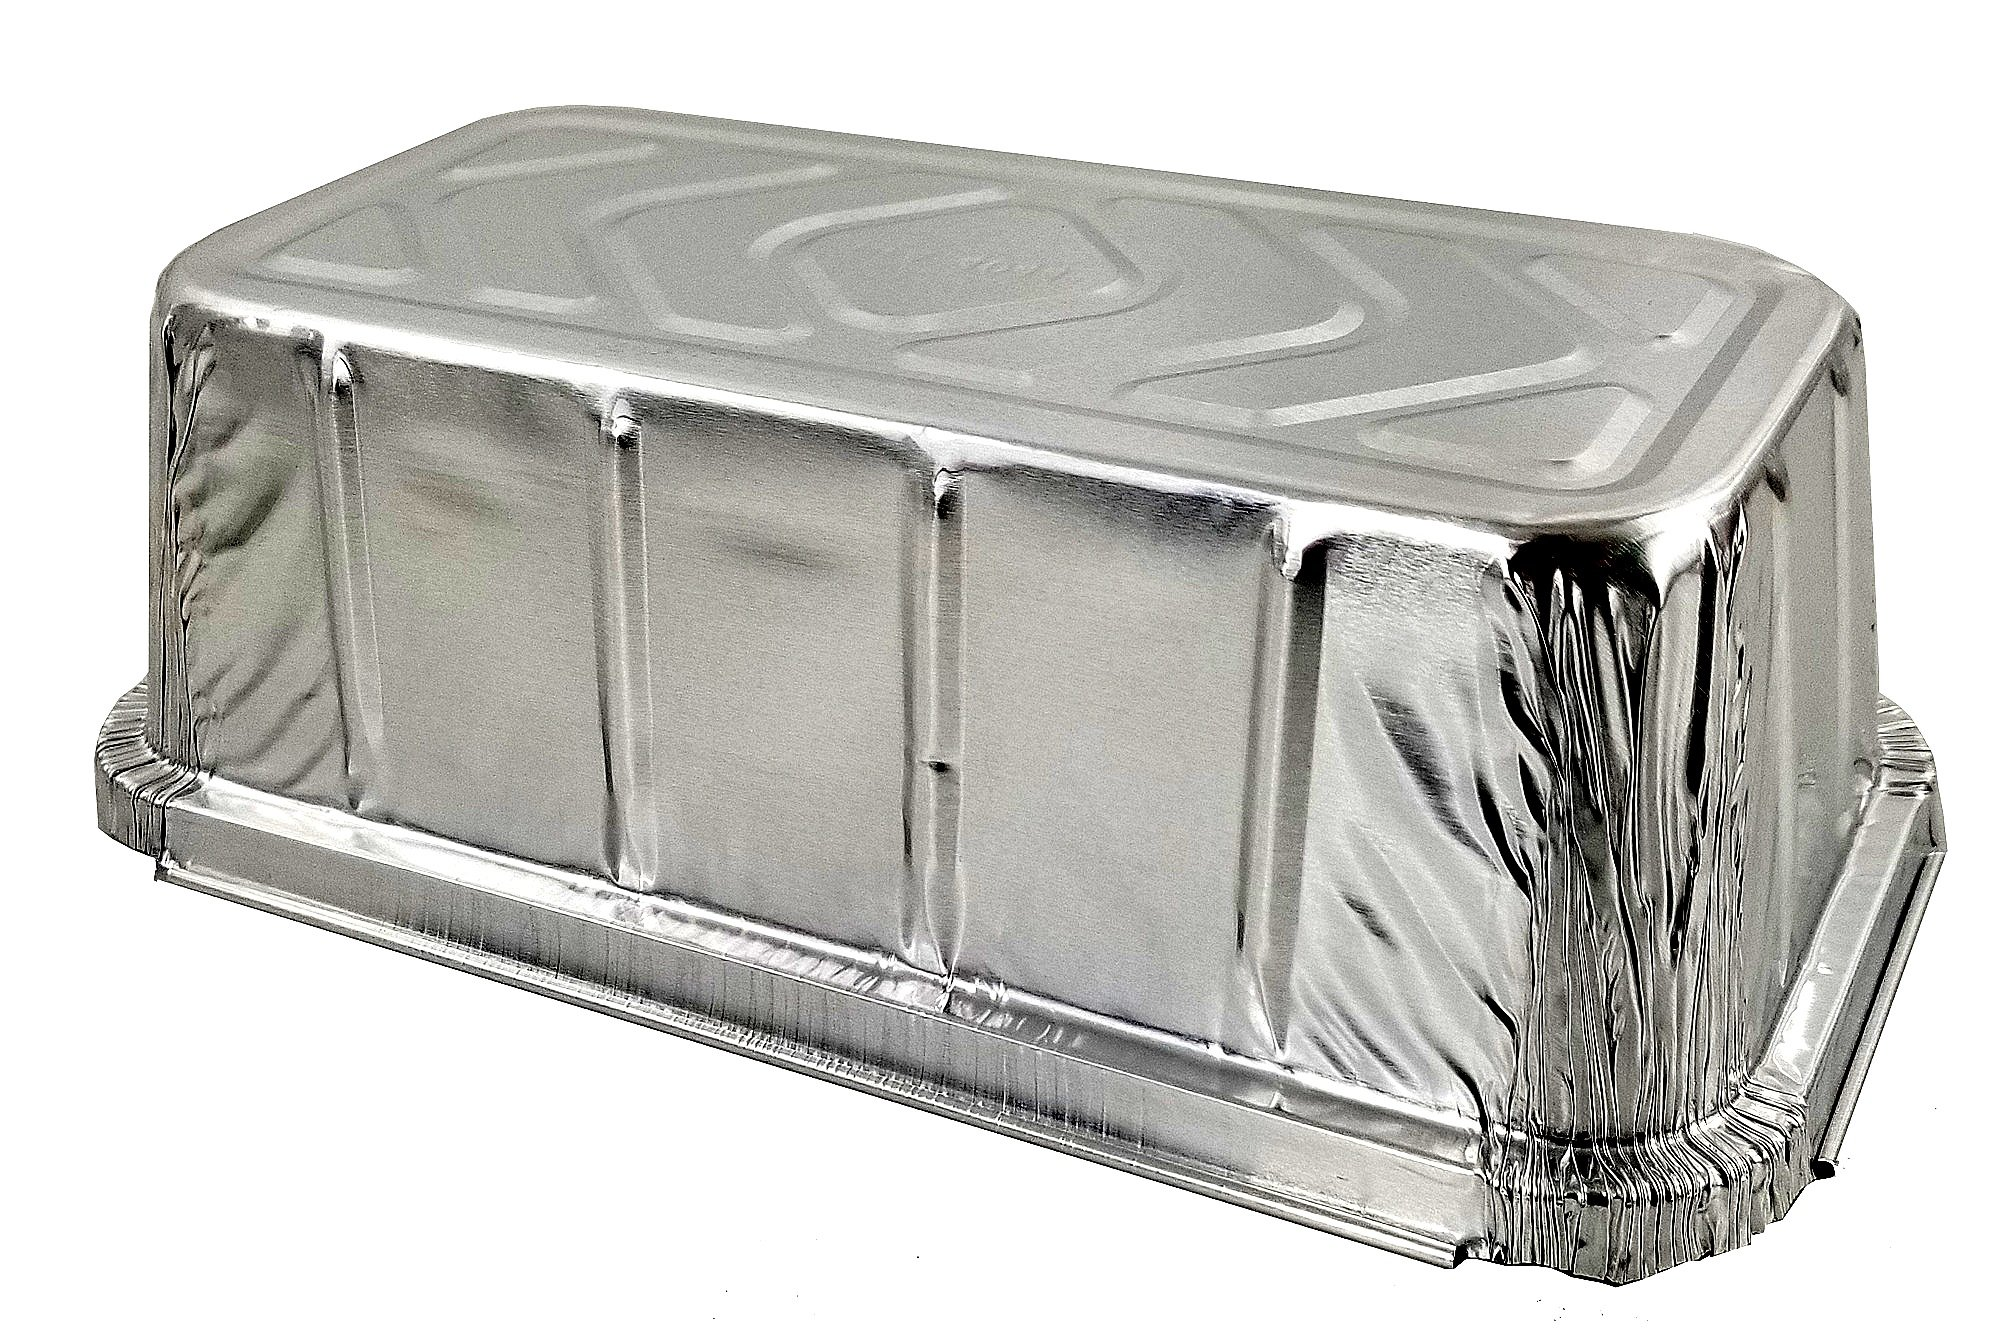 Pactogo 1 1/2 lb. IVC Disposable Aluminum Foil Loaf Bread Pan w/Board Lid (8'' x 4.1'' x 2.2'') - Heavy Duty Made in USA (Pack of 50 Sets) by PACTOGO (Image #4)